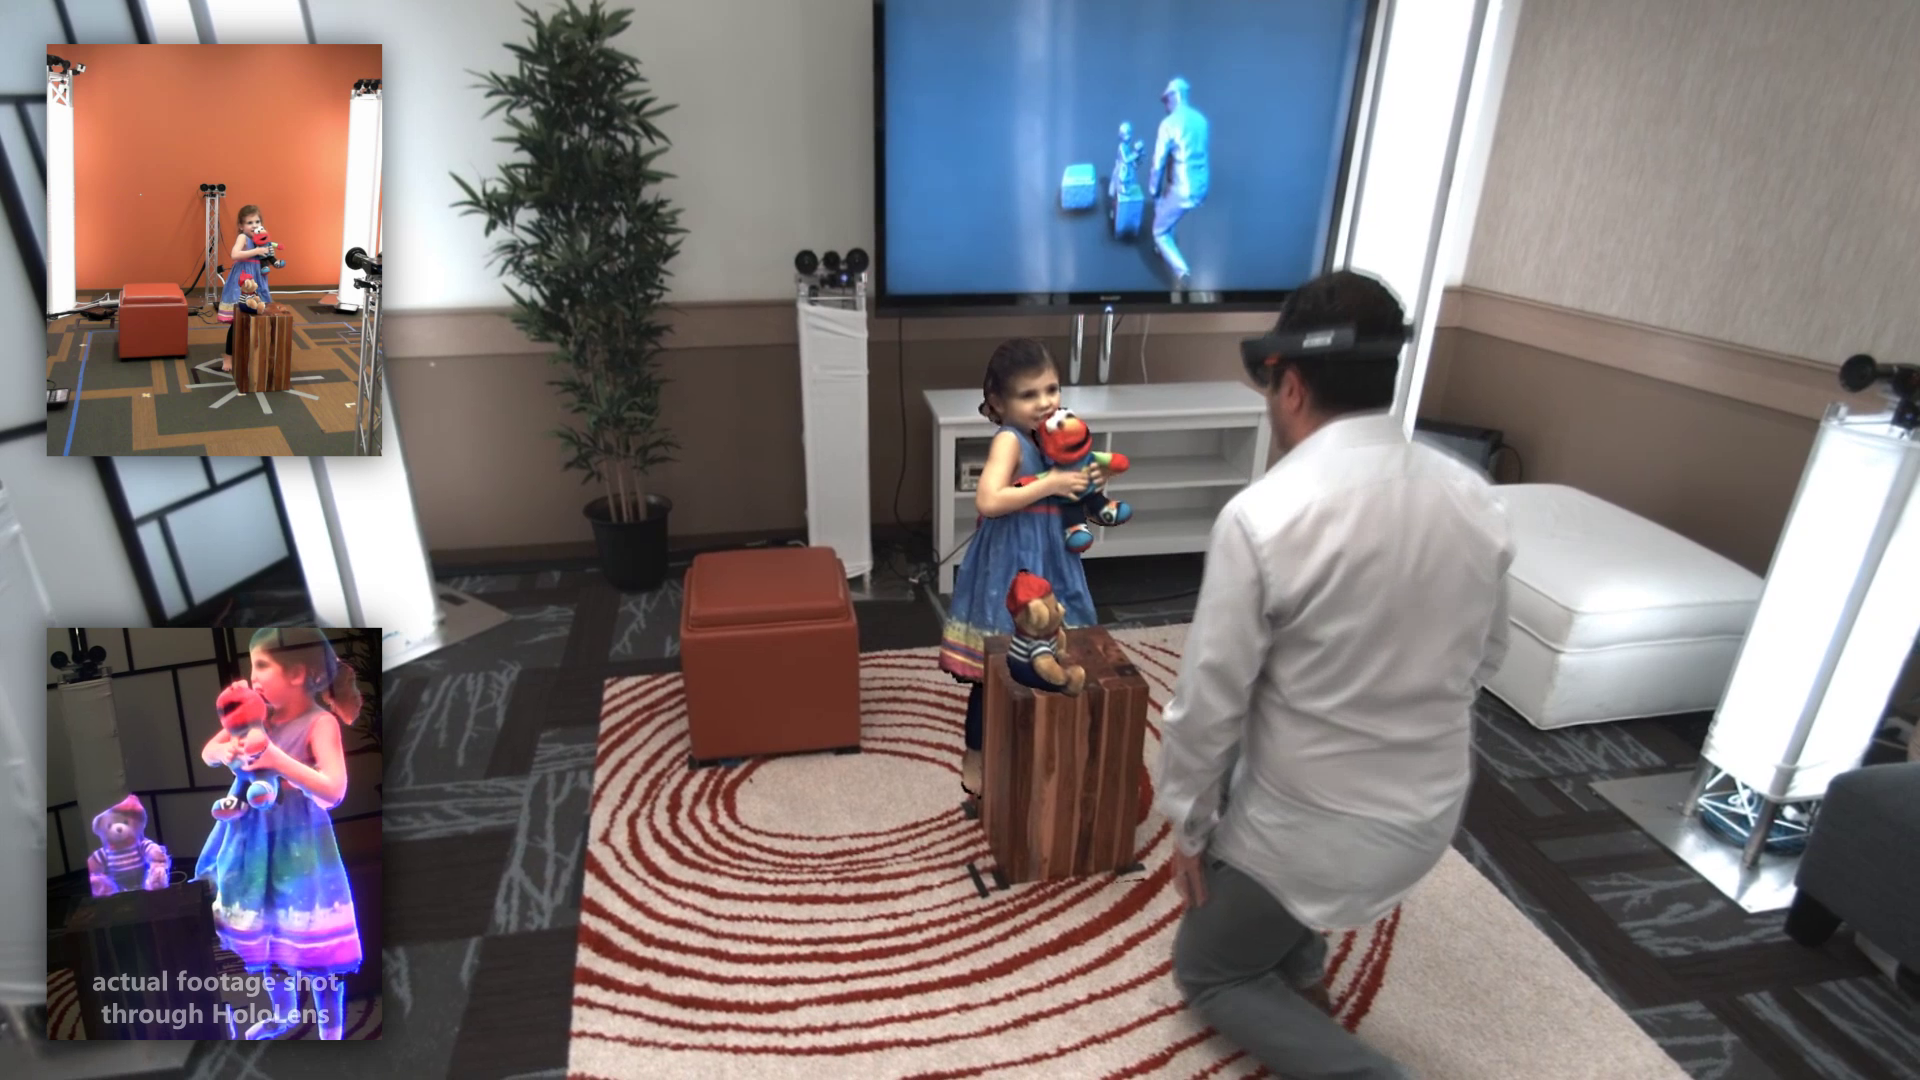 Microsoft Layout lets users organize rooms in the real-world with HoloLens